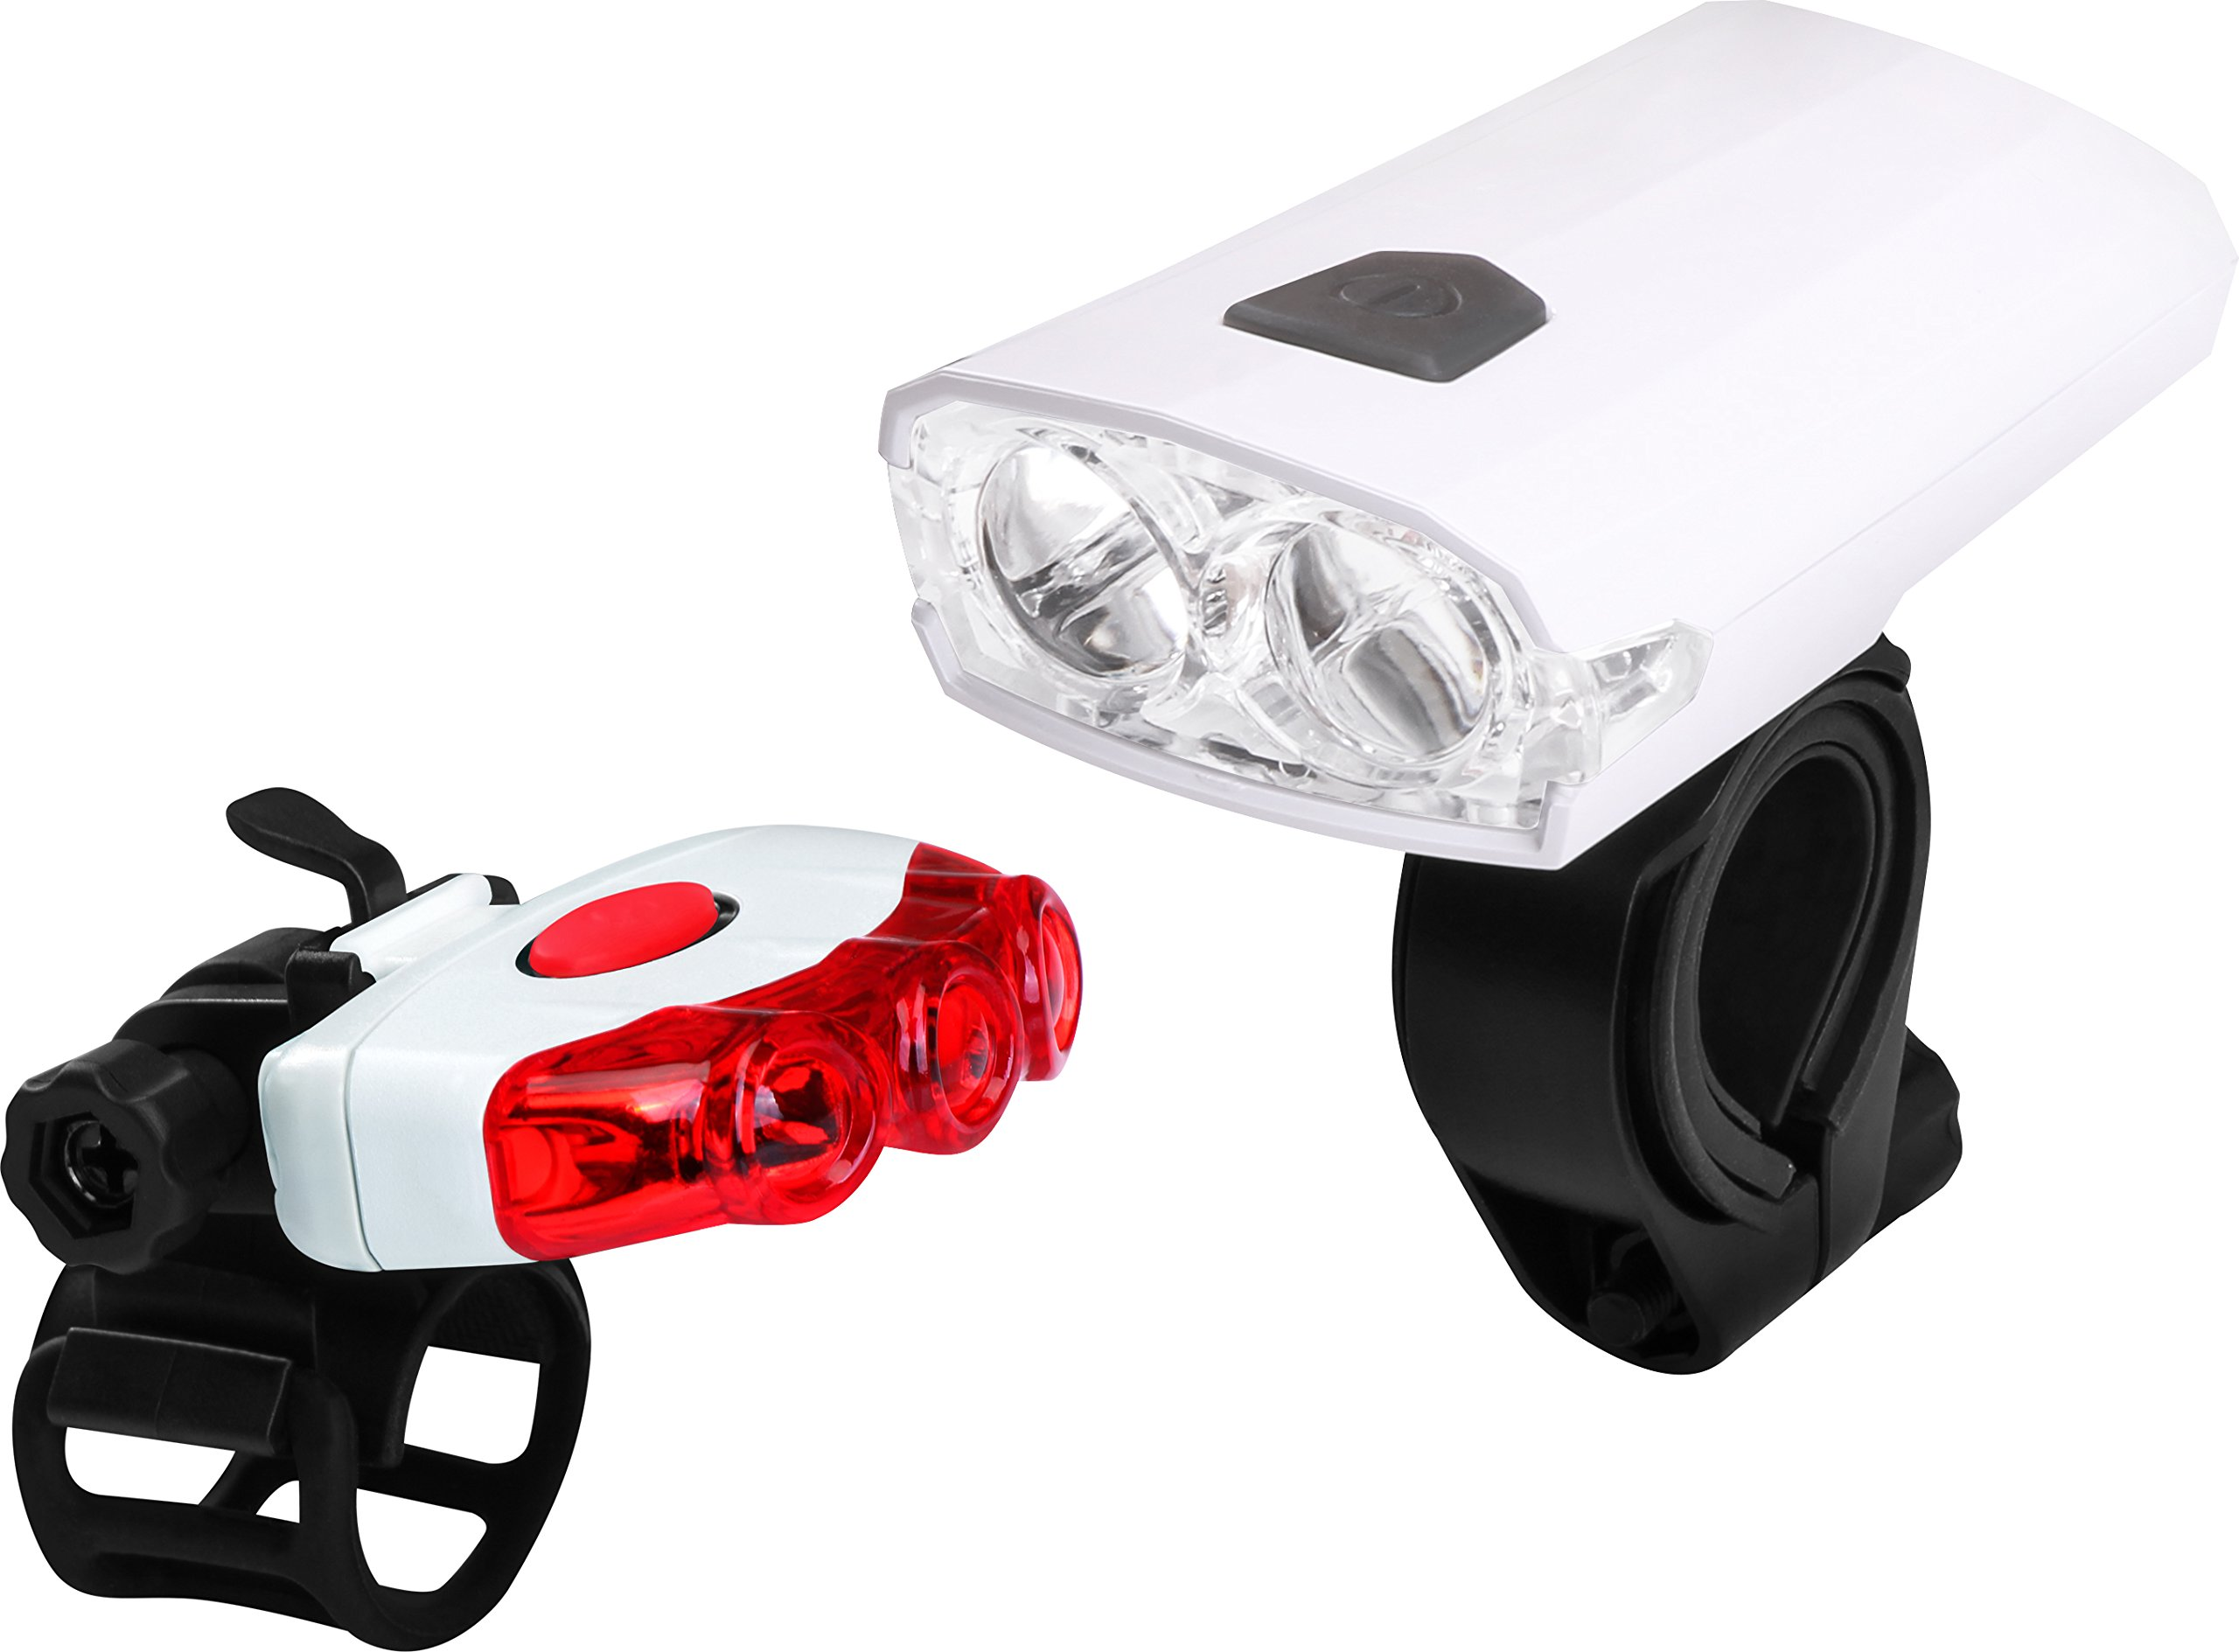 Utopia Home Bicycle Head and Tail Light - USB Rechargeable Bicycle Light Set - IPX4 Water and Impact Resistant - Light Range up to 100 Meters - Perfect for Traveling Experience - Easy Installation